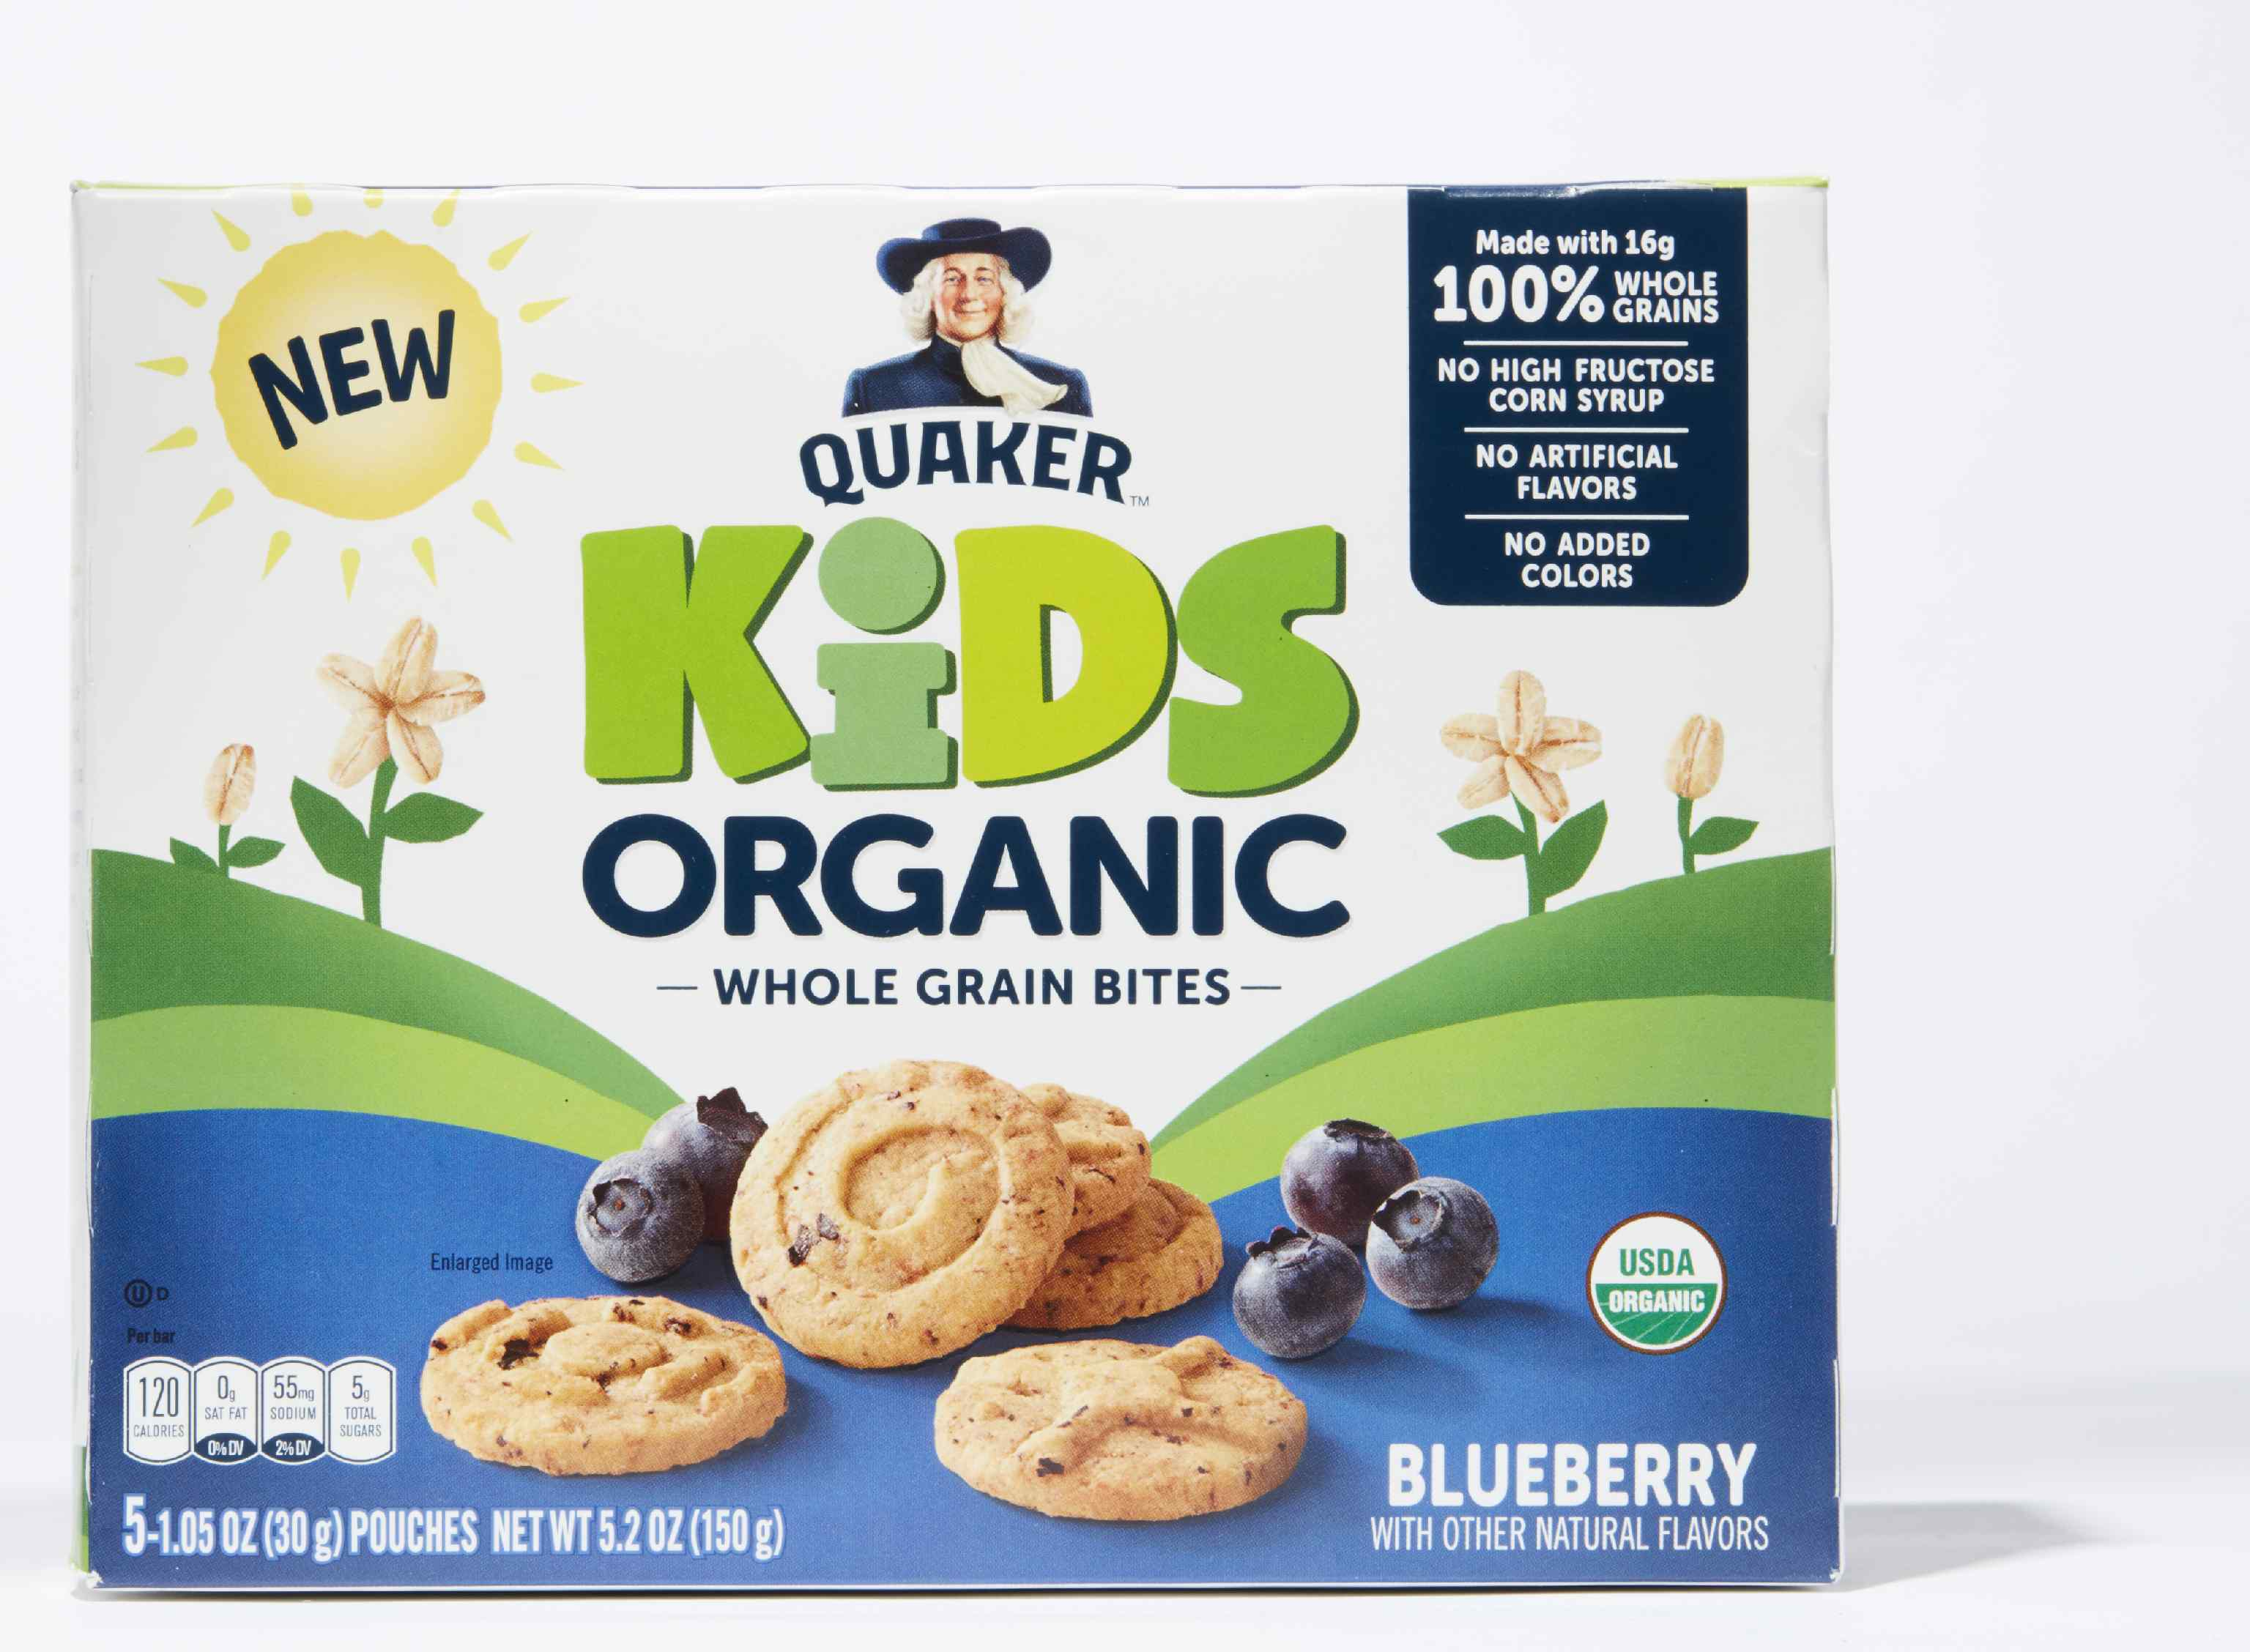 Quaker Kids Organic Blueberry Whole Grain Bites